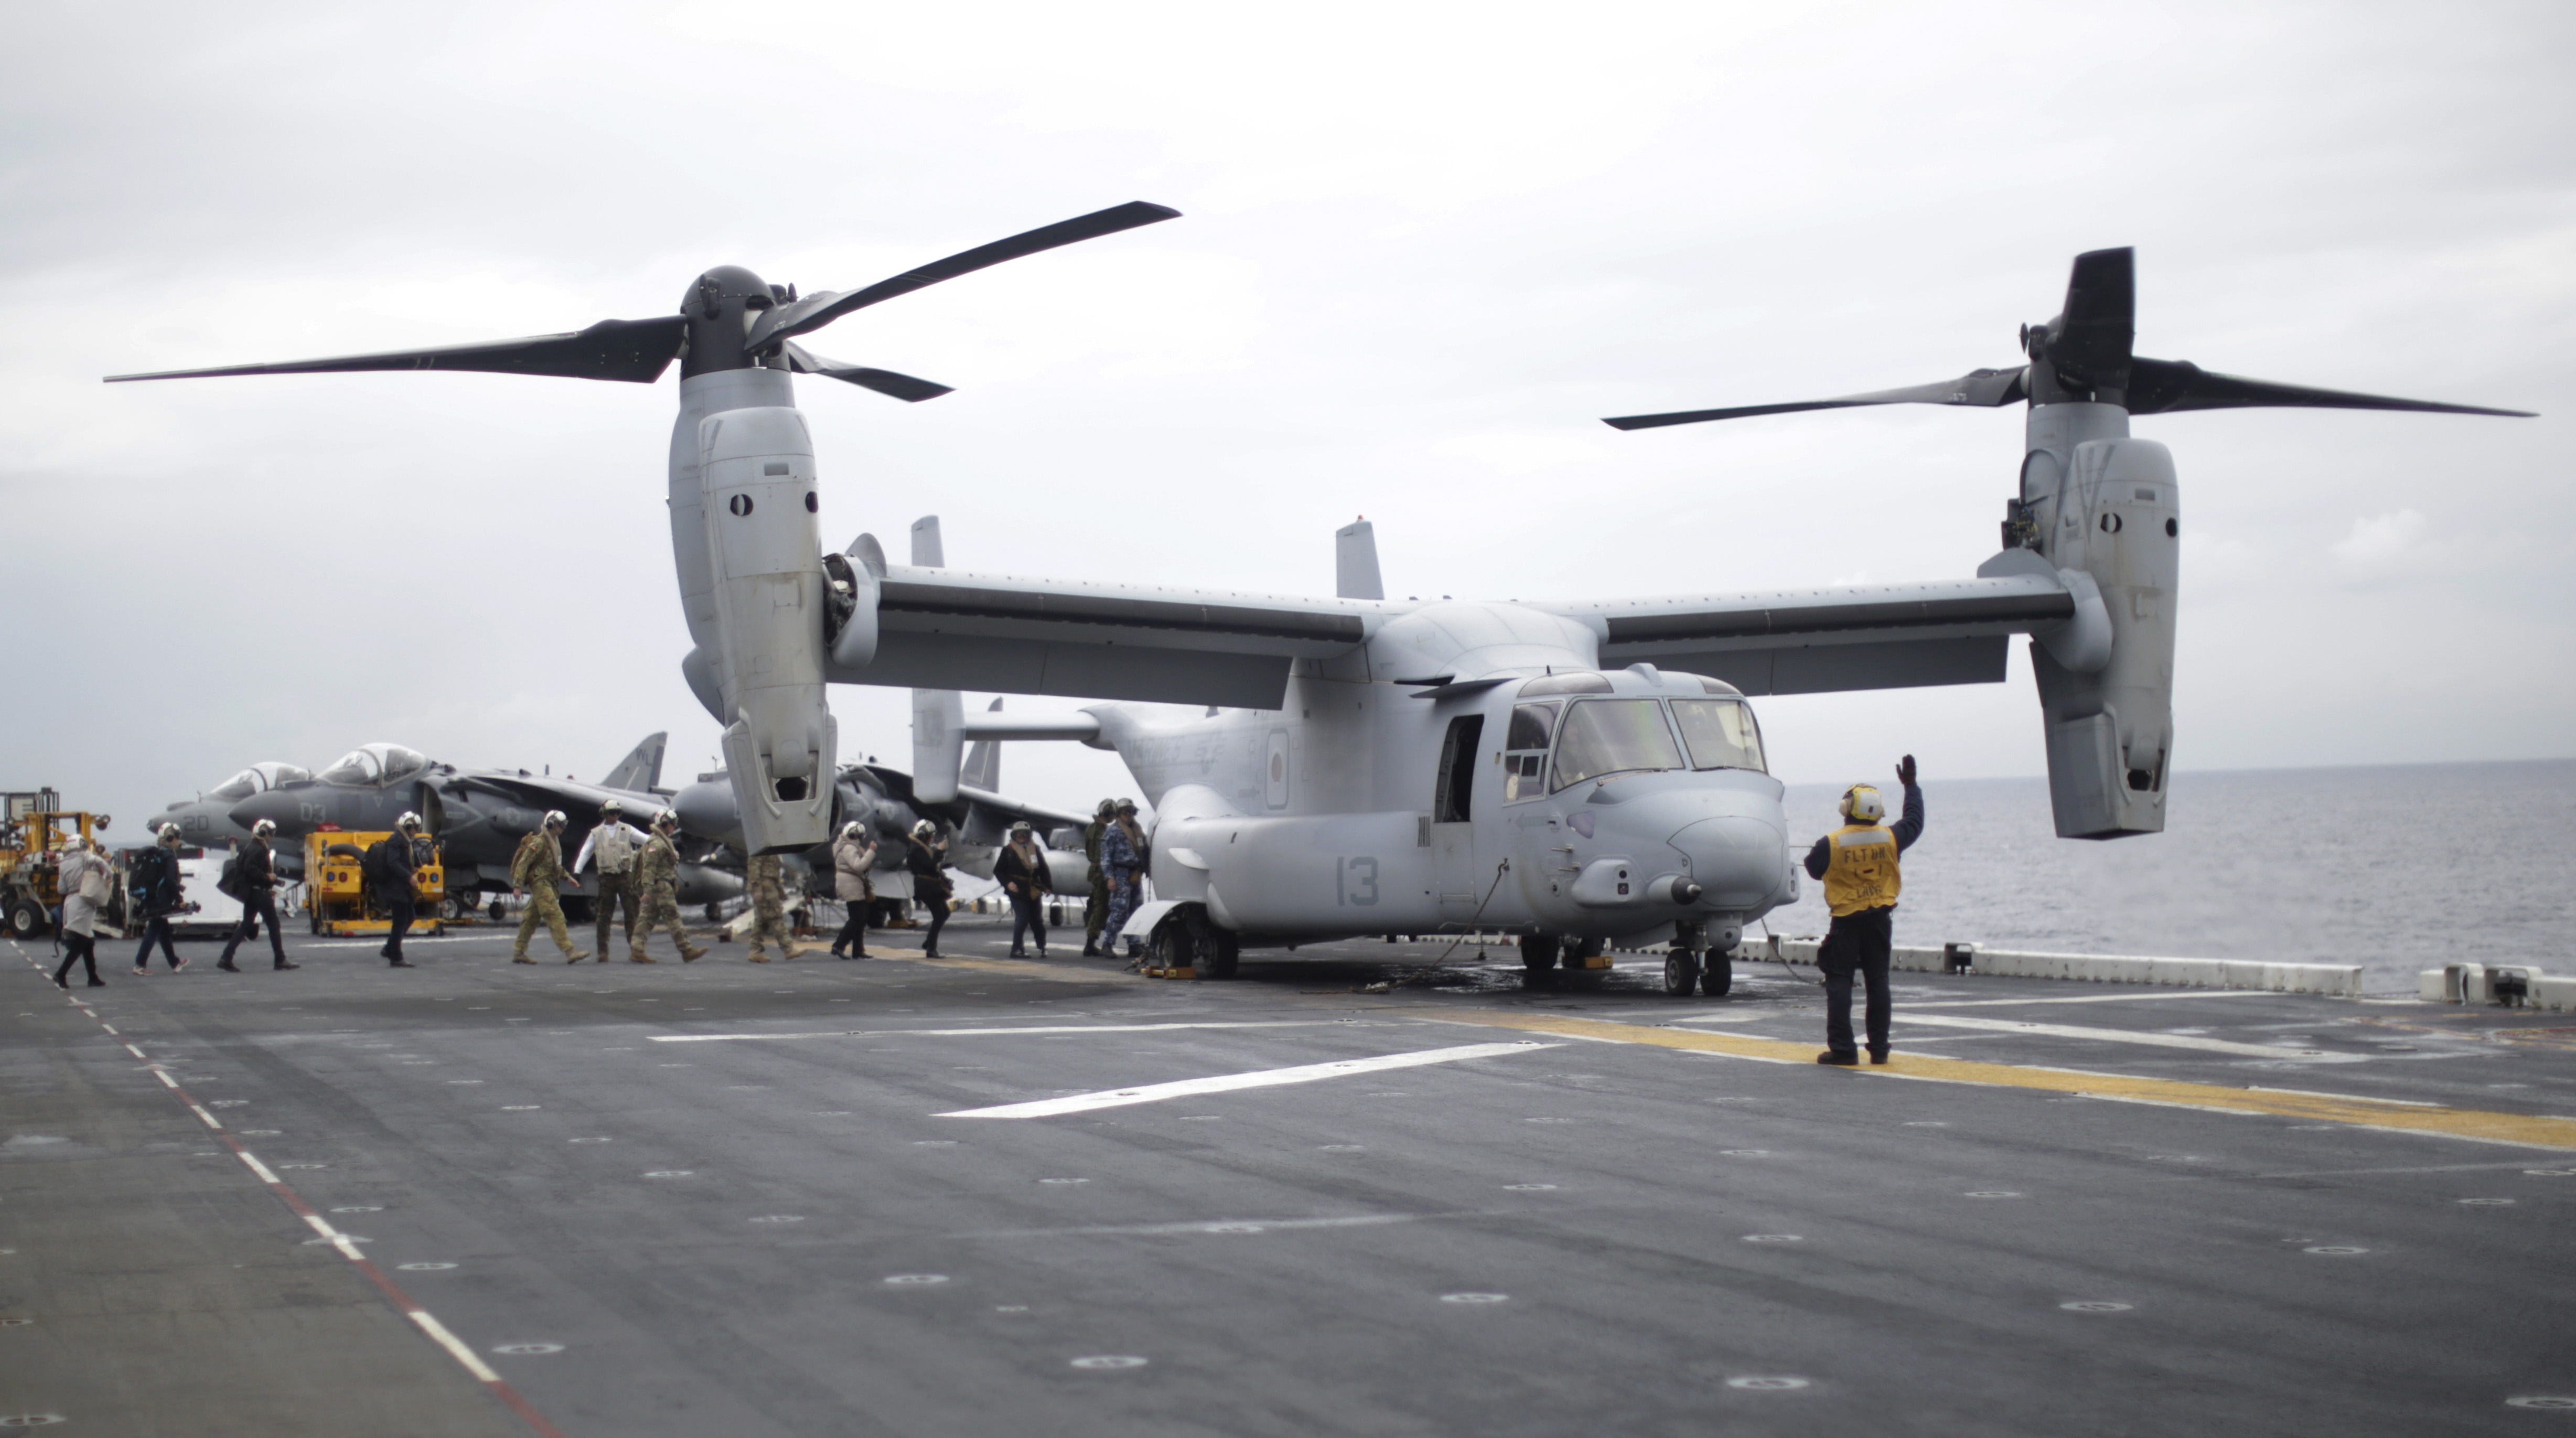 Participants in a ceremony marking the start of Talisman Saber 2017, a biennial joint military exercise between the United States and Australia, board a US Marines MV-22B Osprey Aircraft on the deck of the USS Bonhomme Richard amphibious assault ship off the coast of Sydney on June 29, 2017.  / AFP PHOTO / POOL / JASON REED        (Photo credit should read JASON REED/AFP/Getty Images)